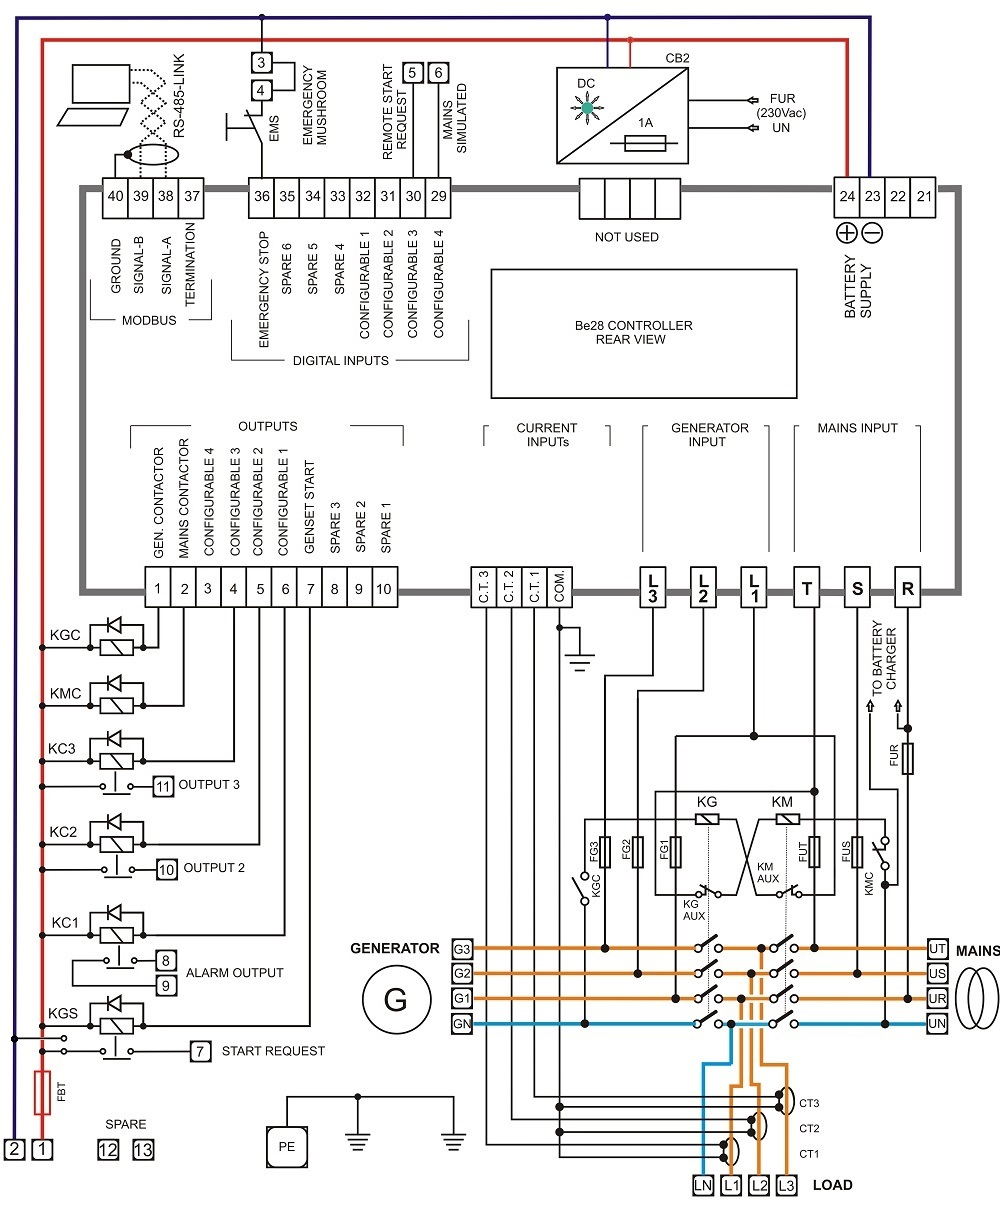 60kVA ATS PANEL WIRING DIAGRAM citroen berlingo wiring diagram efcaviation com citroen berlingo fuse box diagram wiring at webbmarketing.co